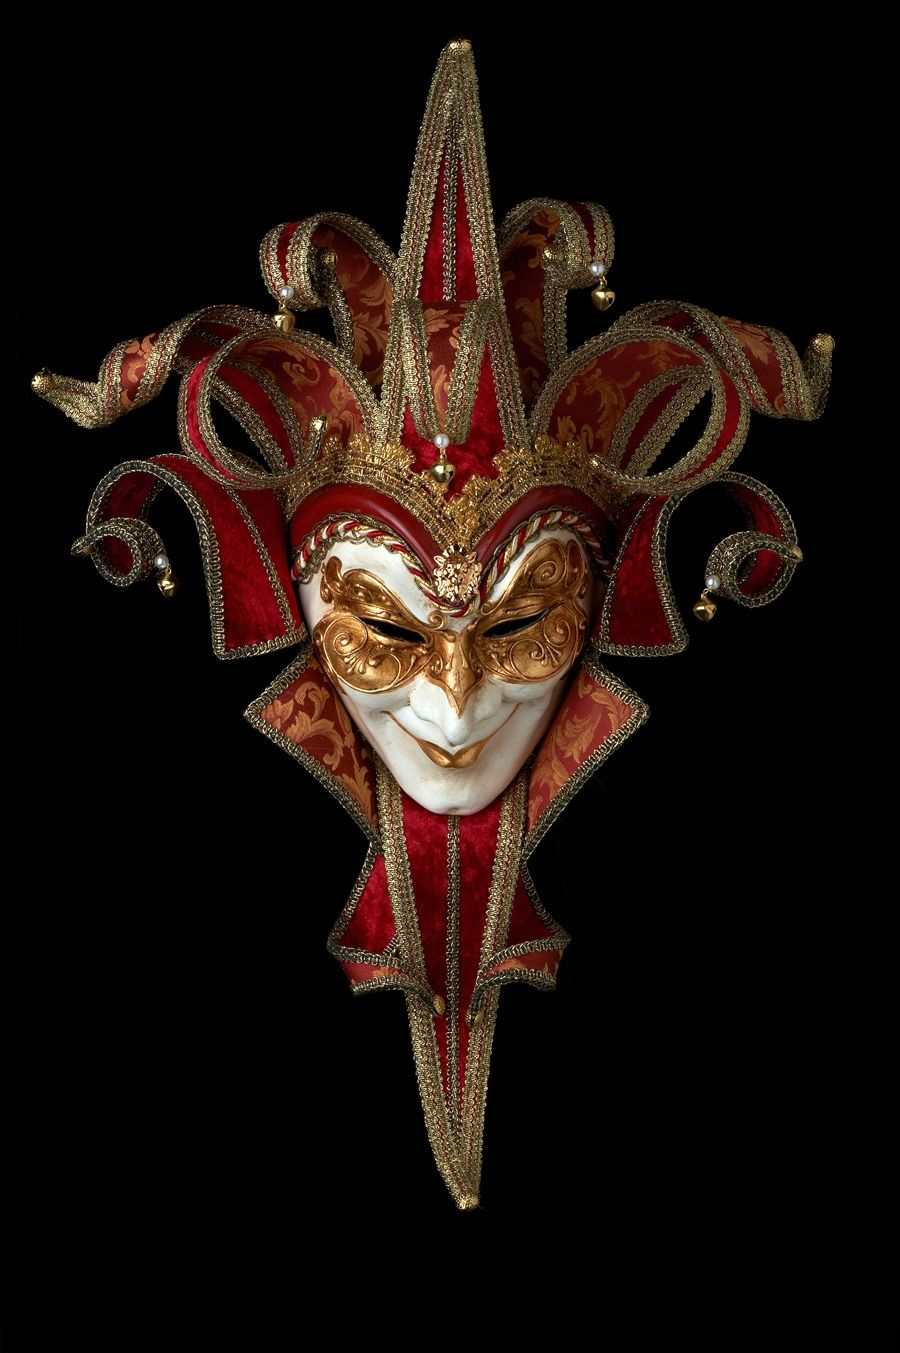 images of plague masks sold in venice, italy - Google Search ...